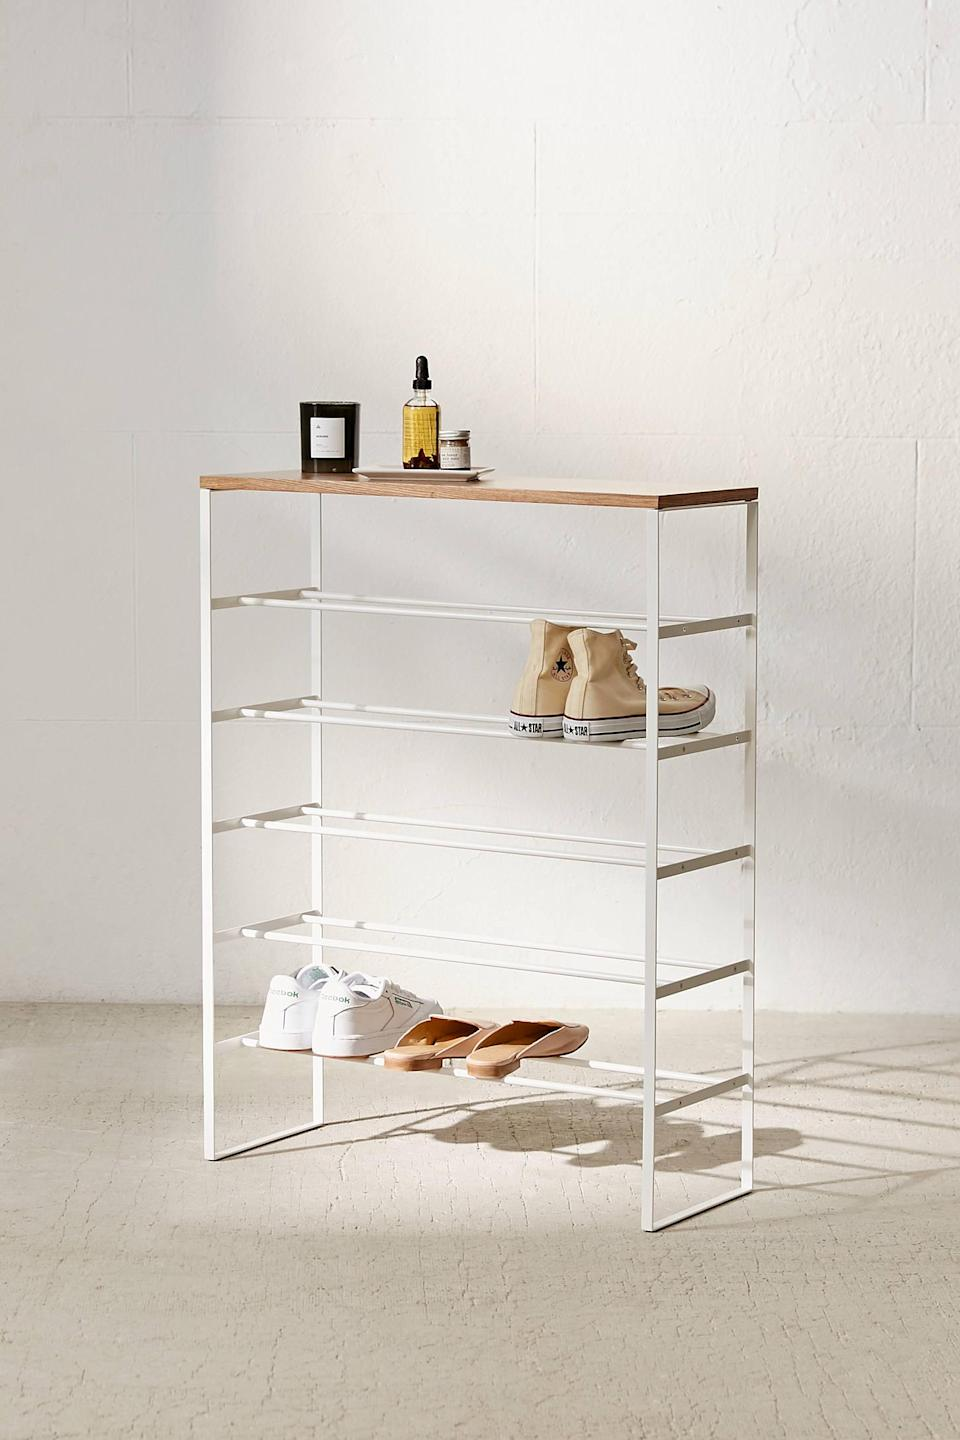 """<h2>Yamazaki Shoe Rack</h2><br>For the beginner organizer in your life, have them start with something easy like decluttering their shoe collection.<br><br><strong>Yamazaki</strong> 6-Tier Shoe Rack, $, available at <a href=""""https://go.skimresources.com/?id=30283X879131&url=https%3A%2F%2Fwww.urbanoutfitters.com%2Fshop%2F6-tier-shoe-rack%3Fcolor%3D010%26type%3DREGULAR%26size%3DONE%2520SIZE%26quantity%3D1"""" rel=""""nofollow noopener"""" target=""""_blank"""" data-ylk=""""slk:Urban Outfitters"""" class=""""link rapid-noclick-resp"""">Urban Outfitters</a>"""